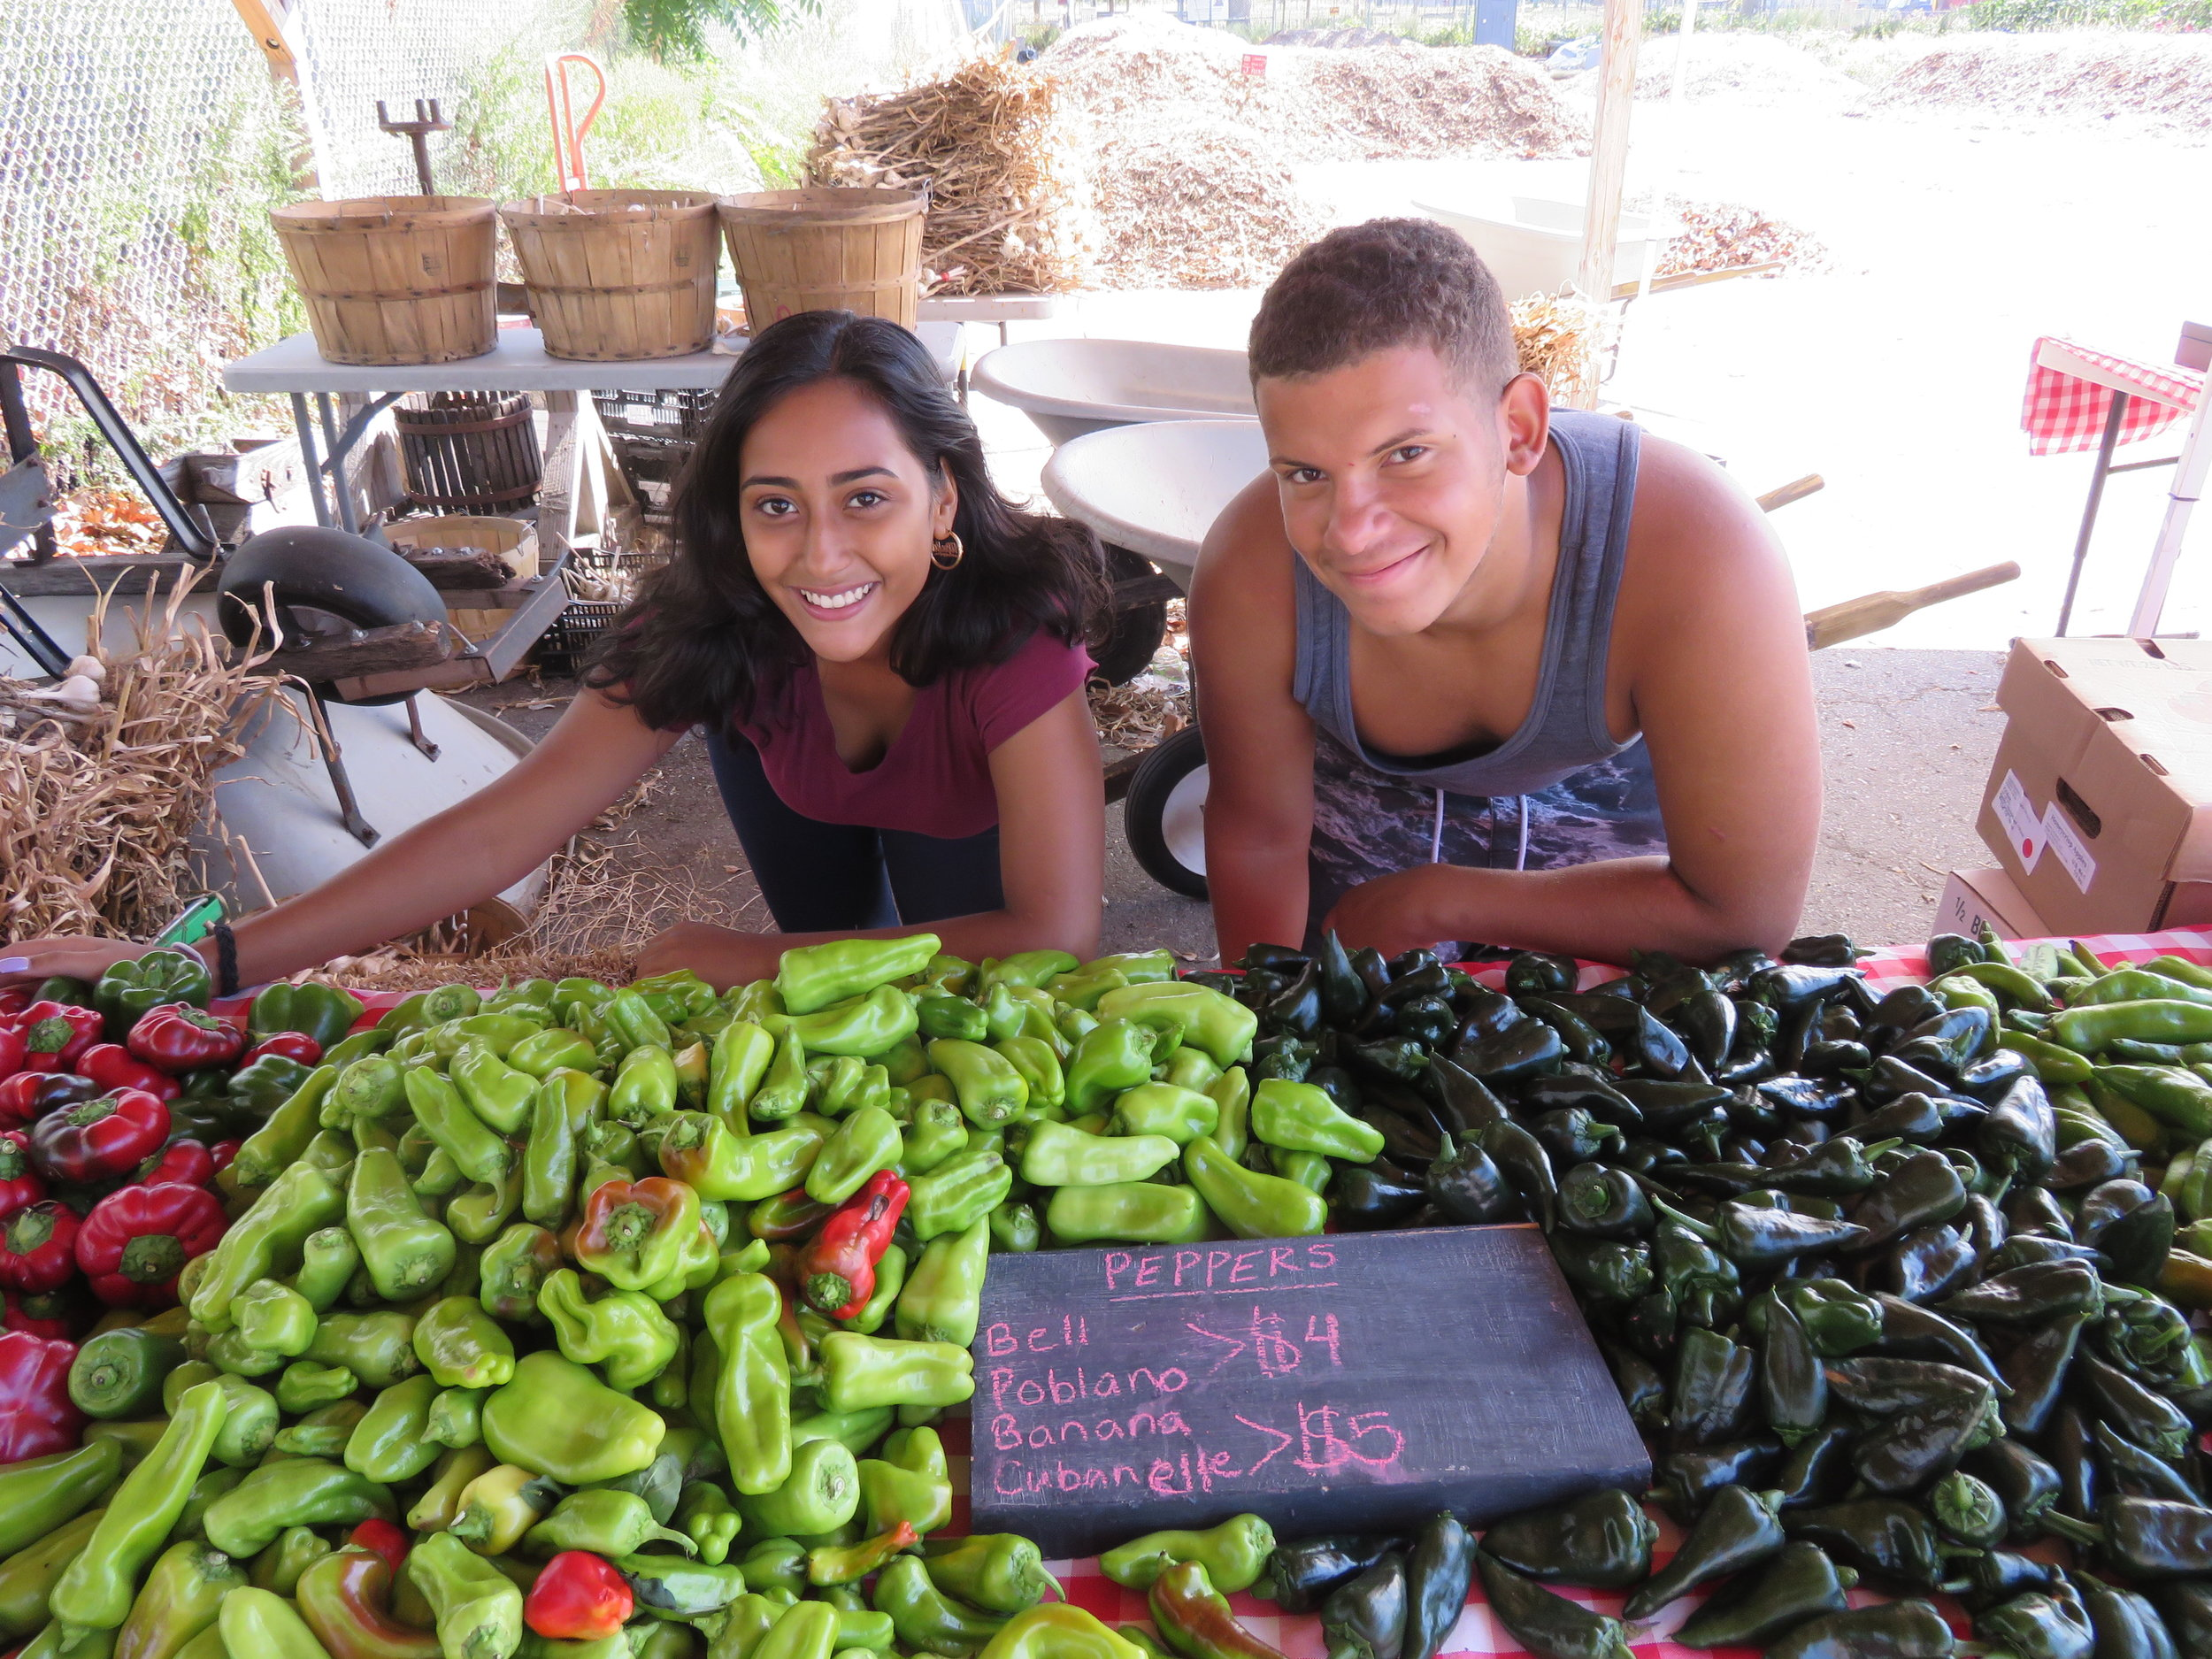 The market crew showing off their beautiful pepper display.